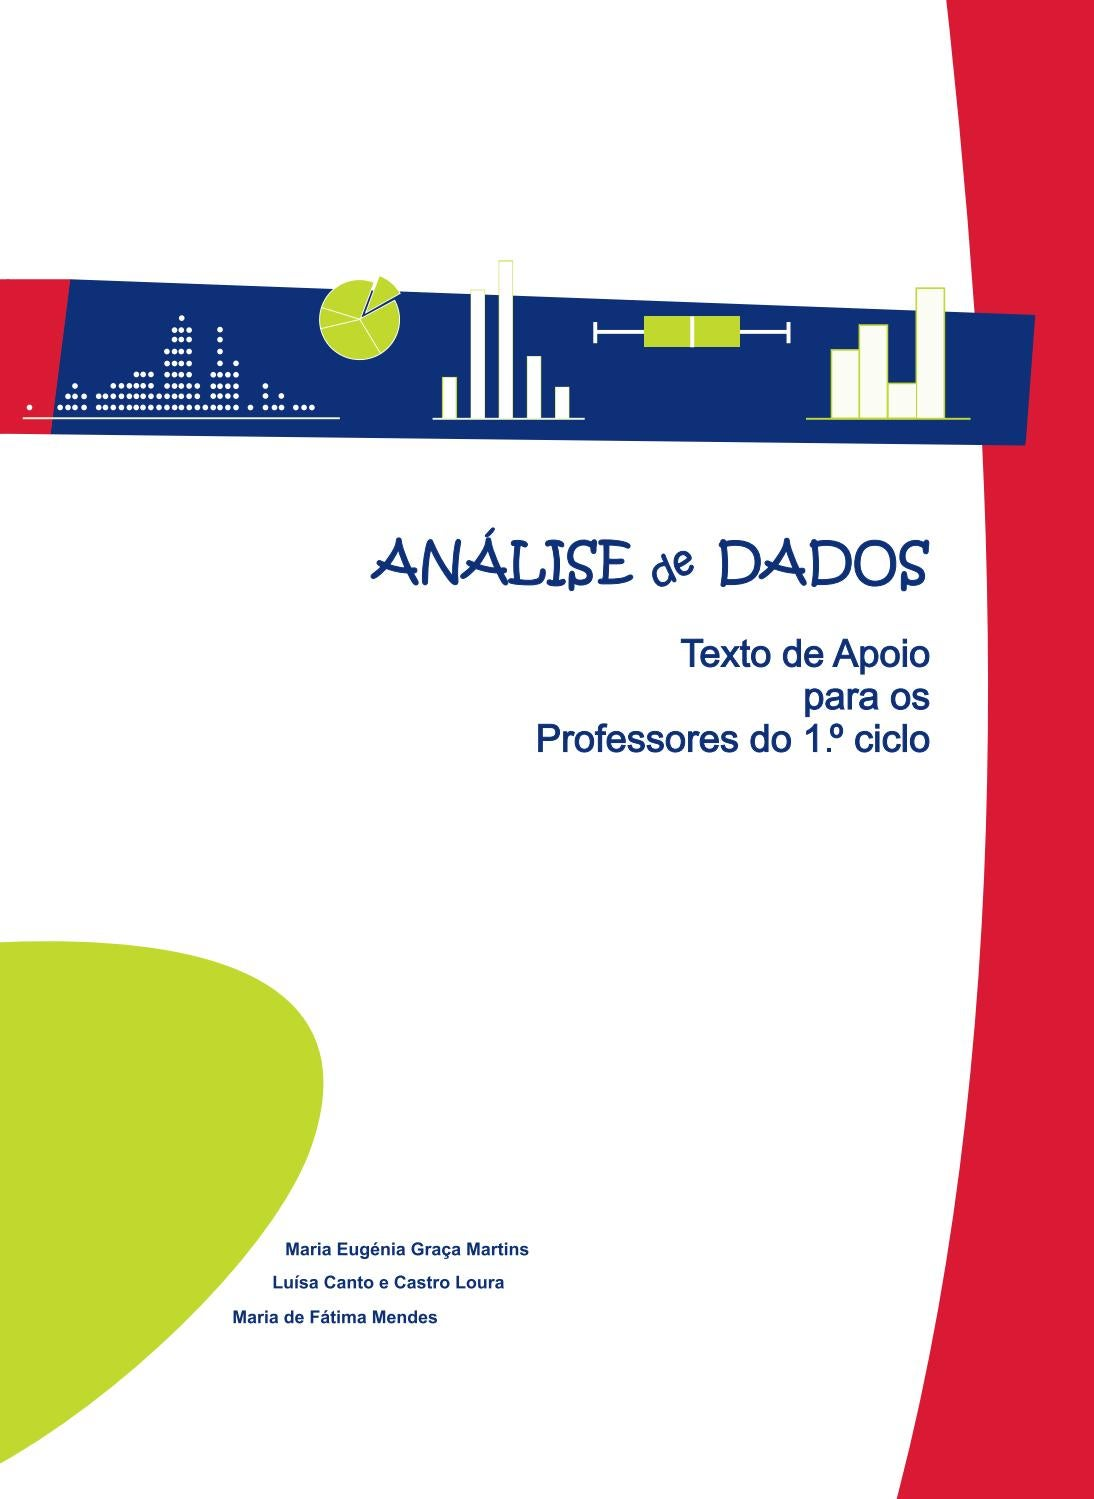 Analise dados brochura by celia mestre issuu fandeluxe Image collections